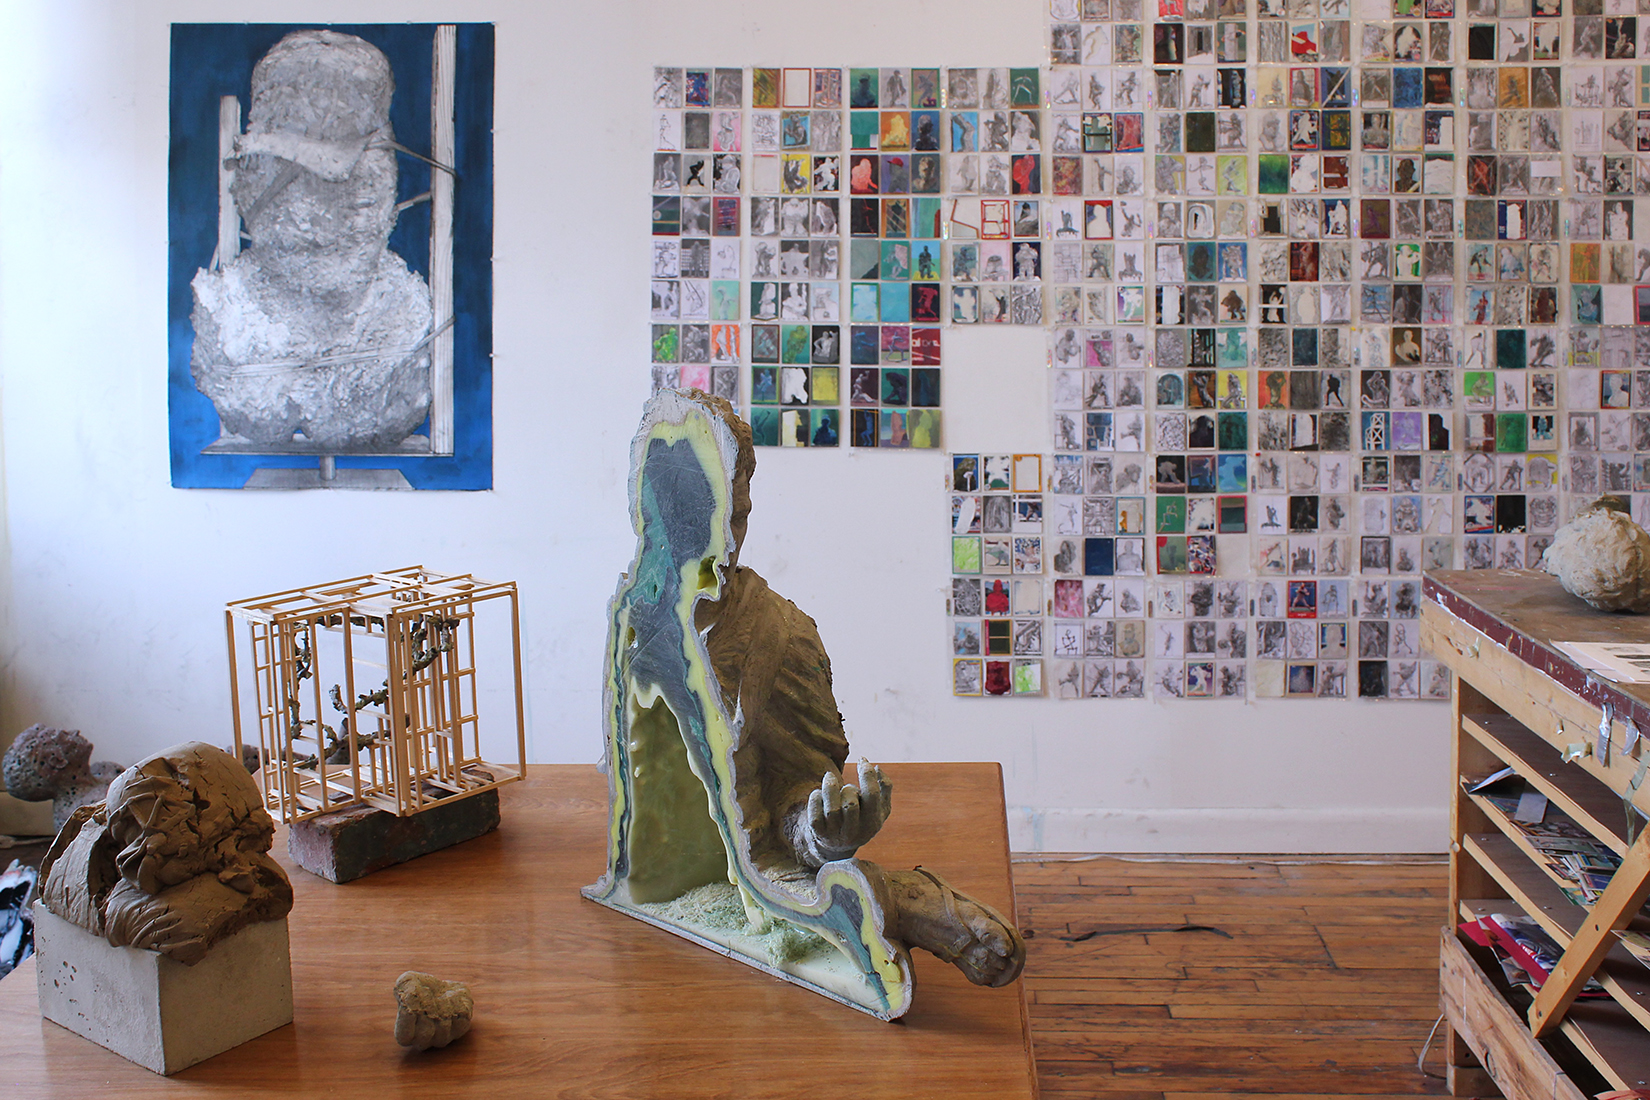 Installation view: Paris' studio in Brooklyn, NY.